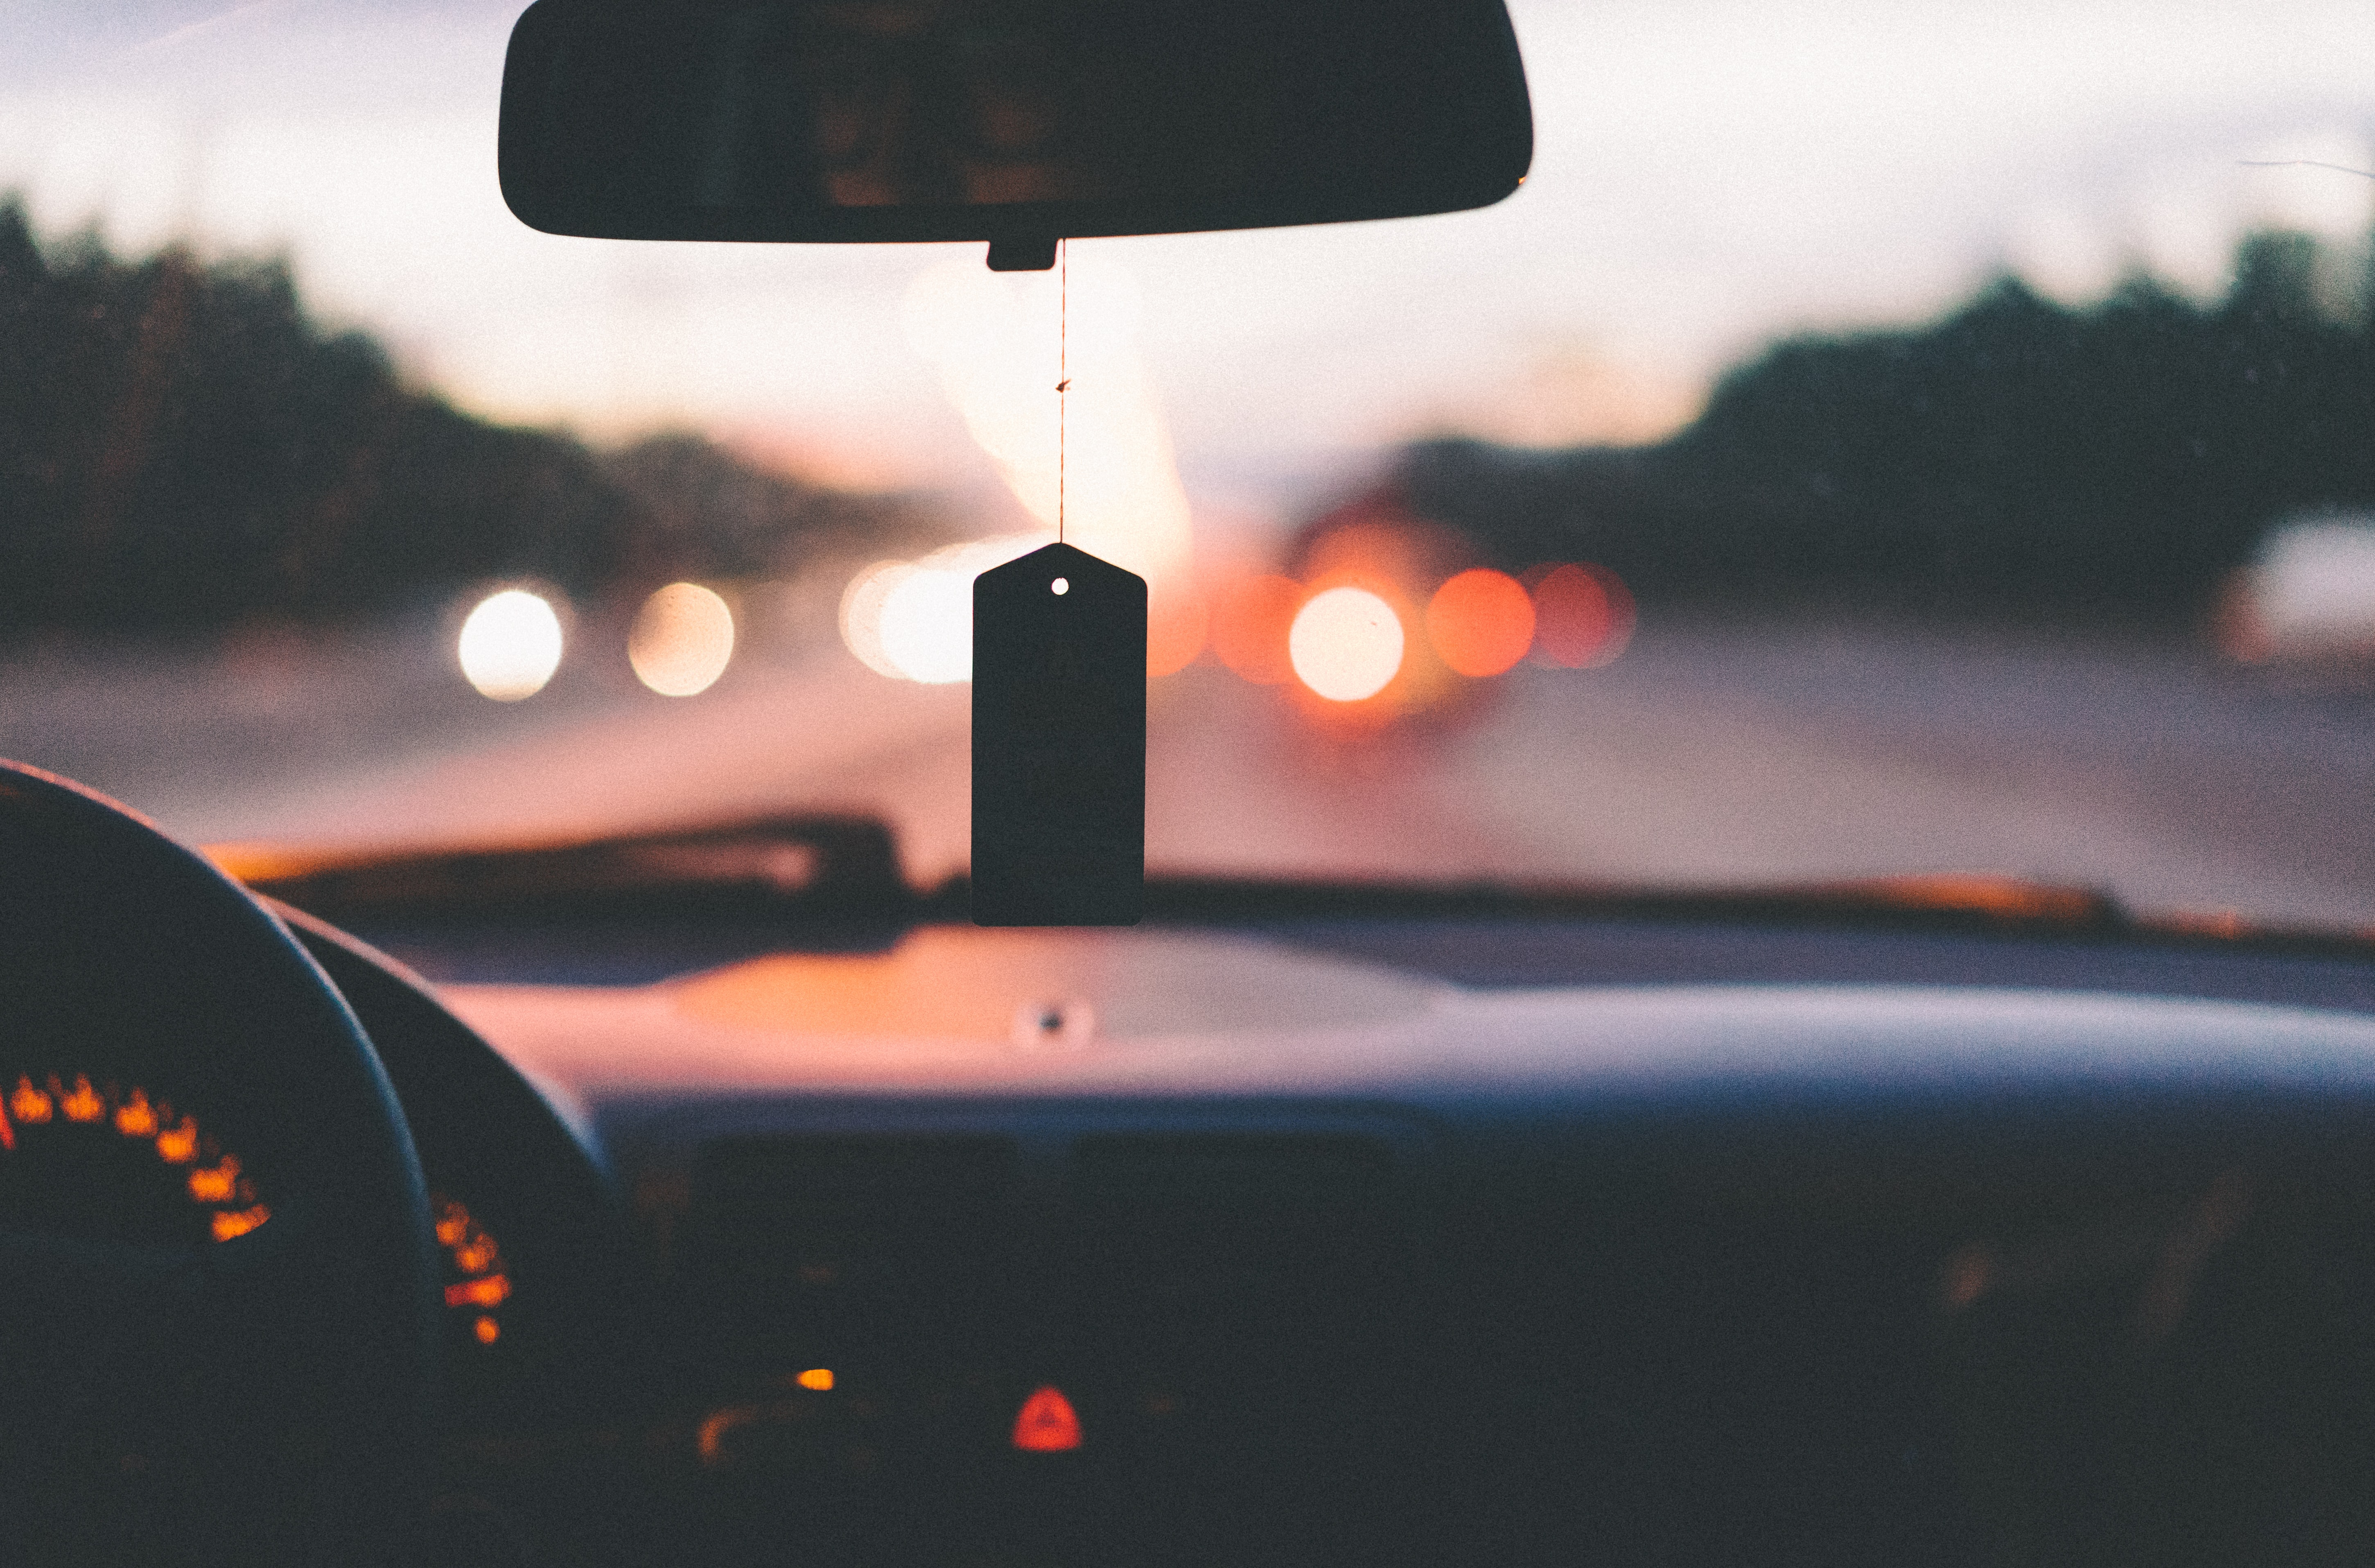 shallow focus photography of car dashboard